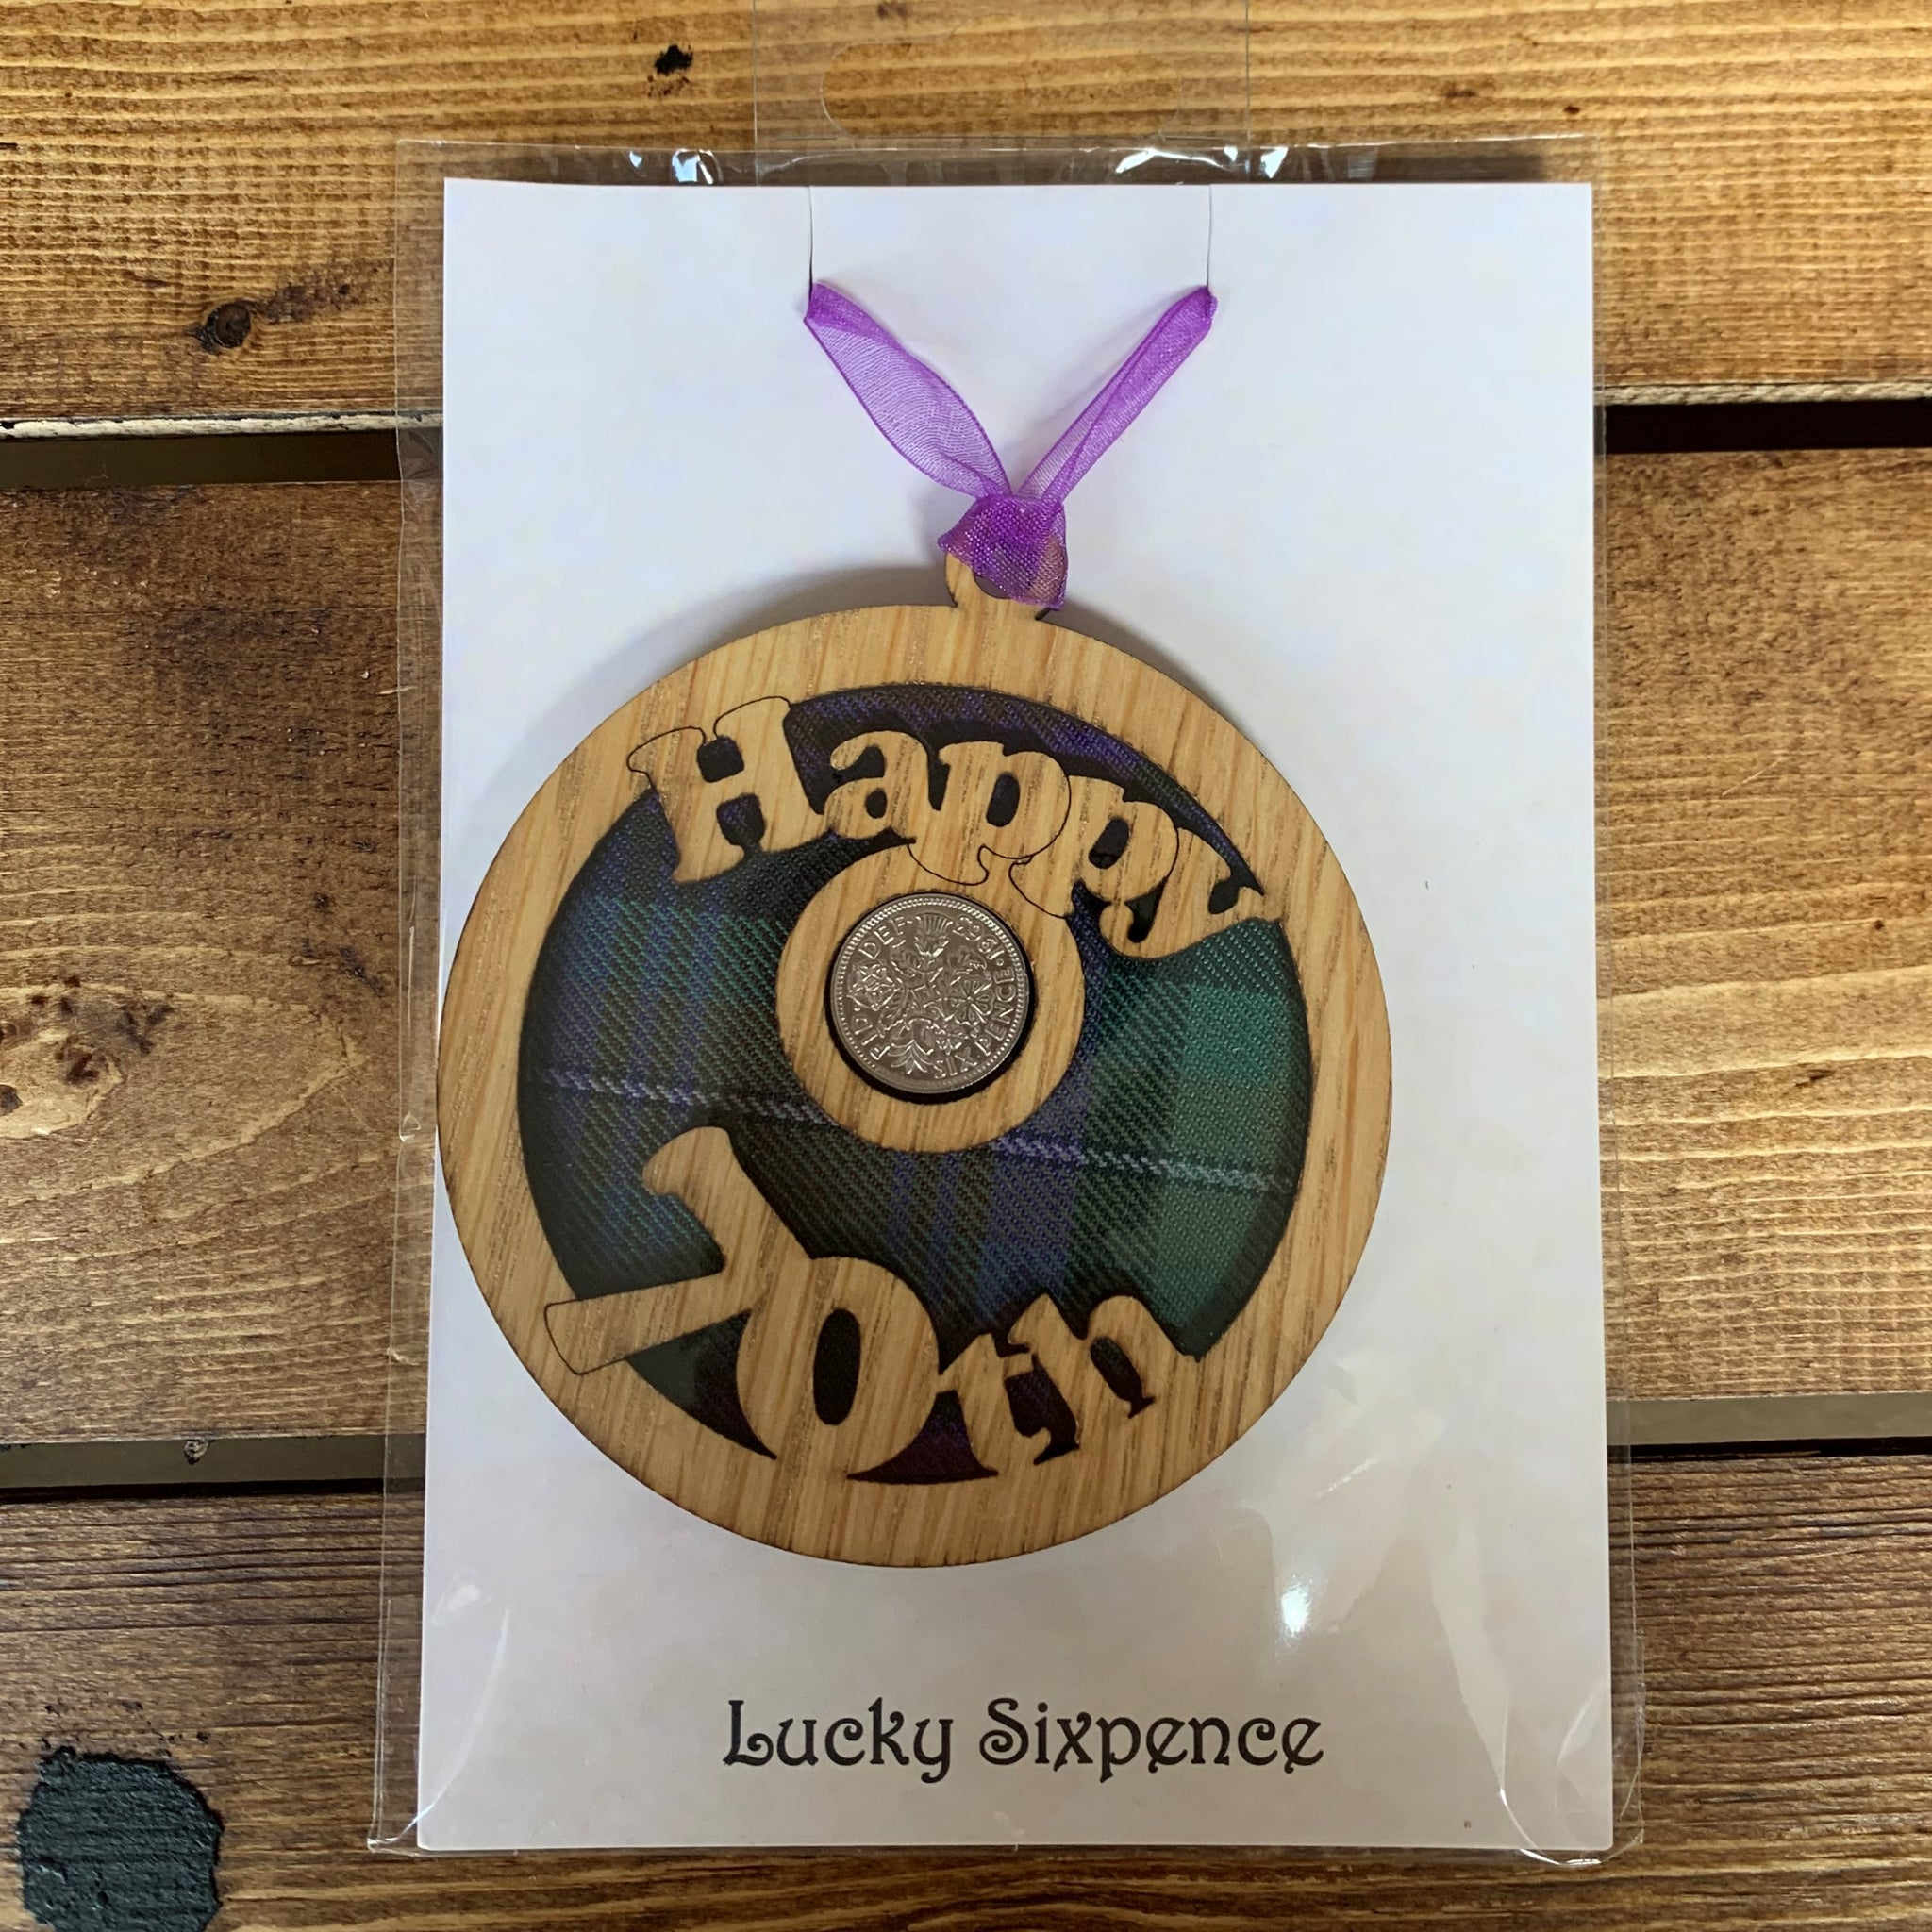 A unique keepsake gift with a Scottish twist.  The sixpence is mounted onto a round hanging oak veneered wood with tartan inserts, mounted on card and packaged in clear cellophane packets.  'Happy 70th' is cut into the wooden hanging.